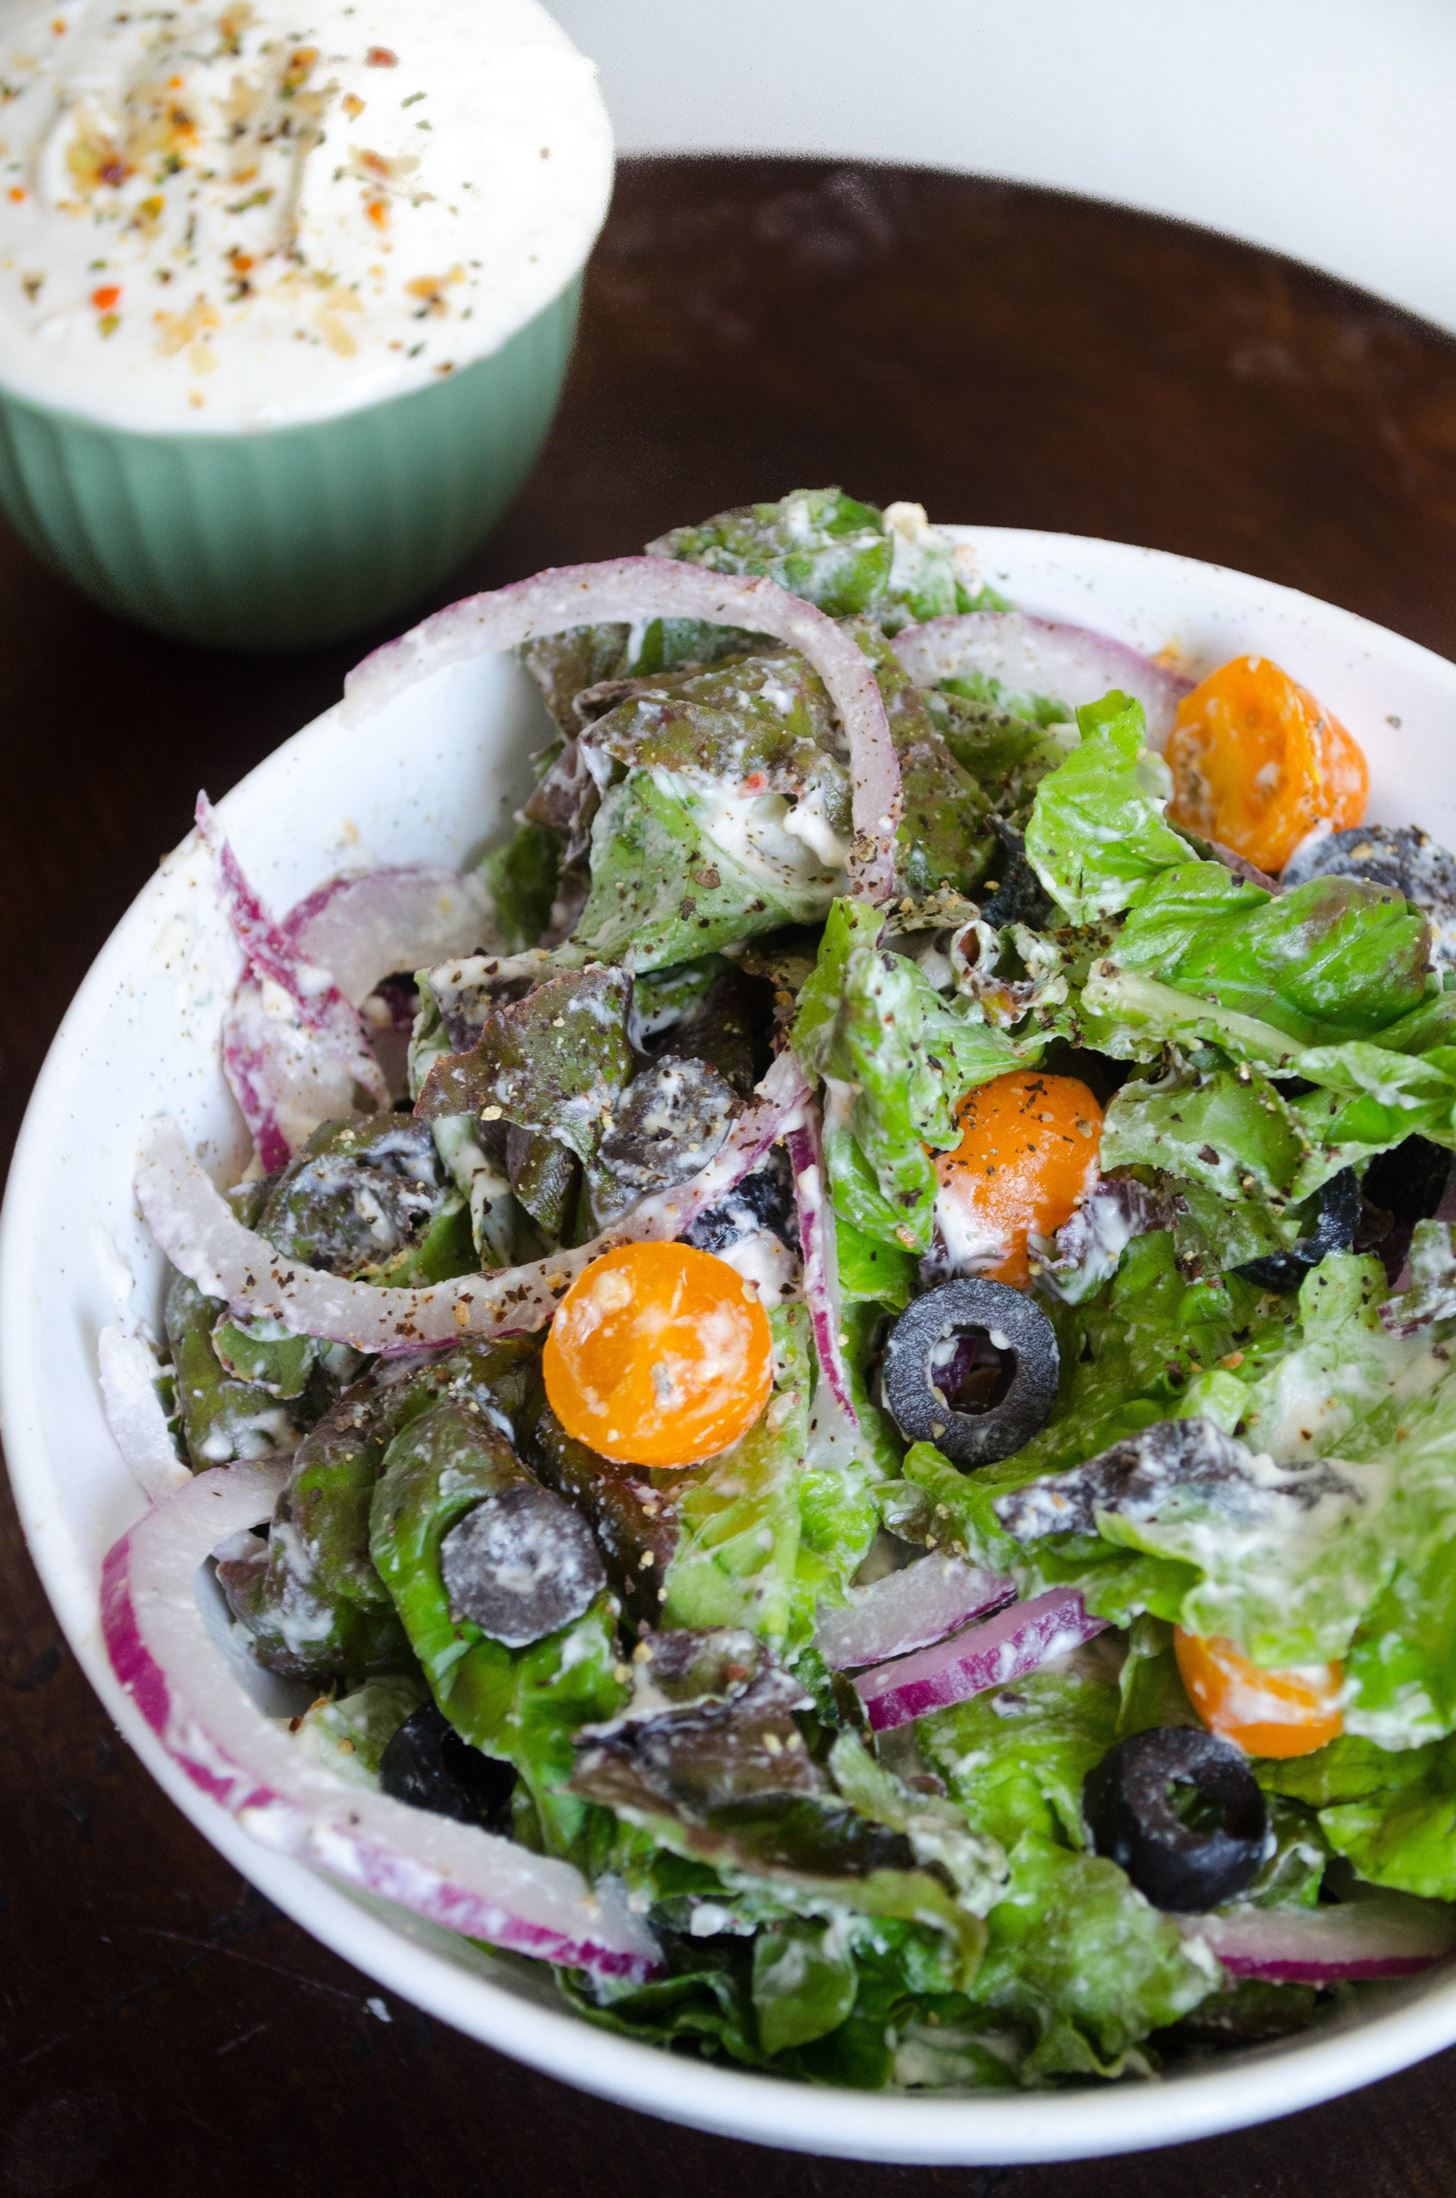 Make Light but Rich Salad Dressings by Whipping Them